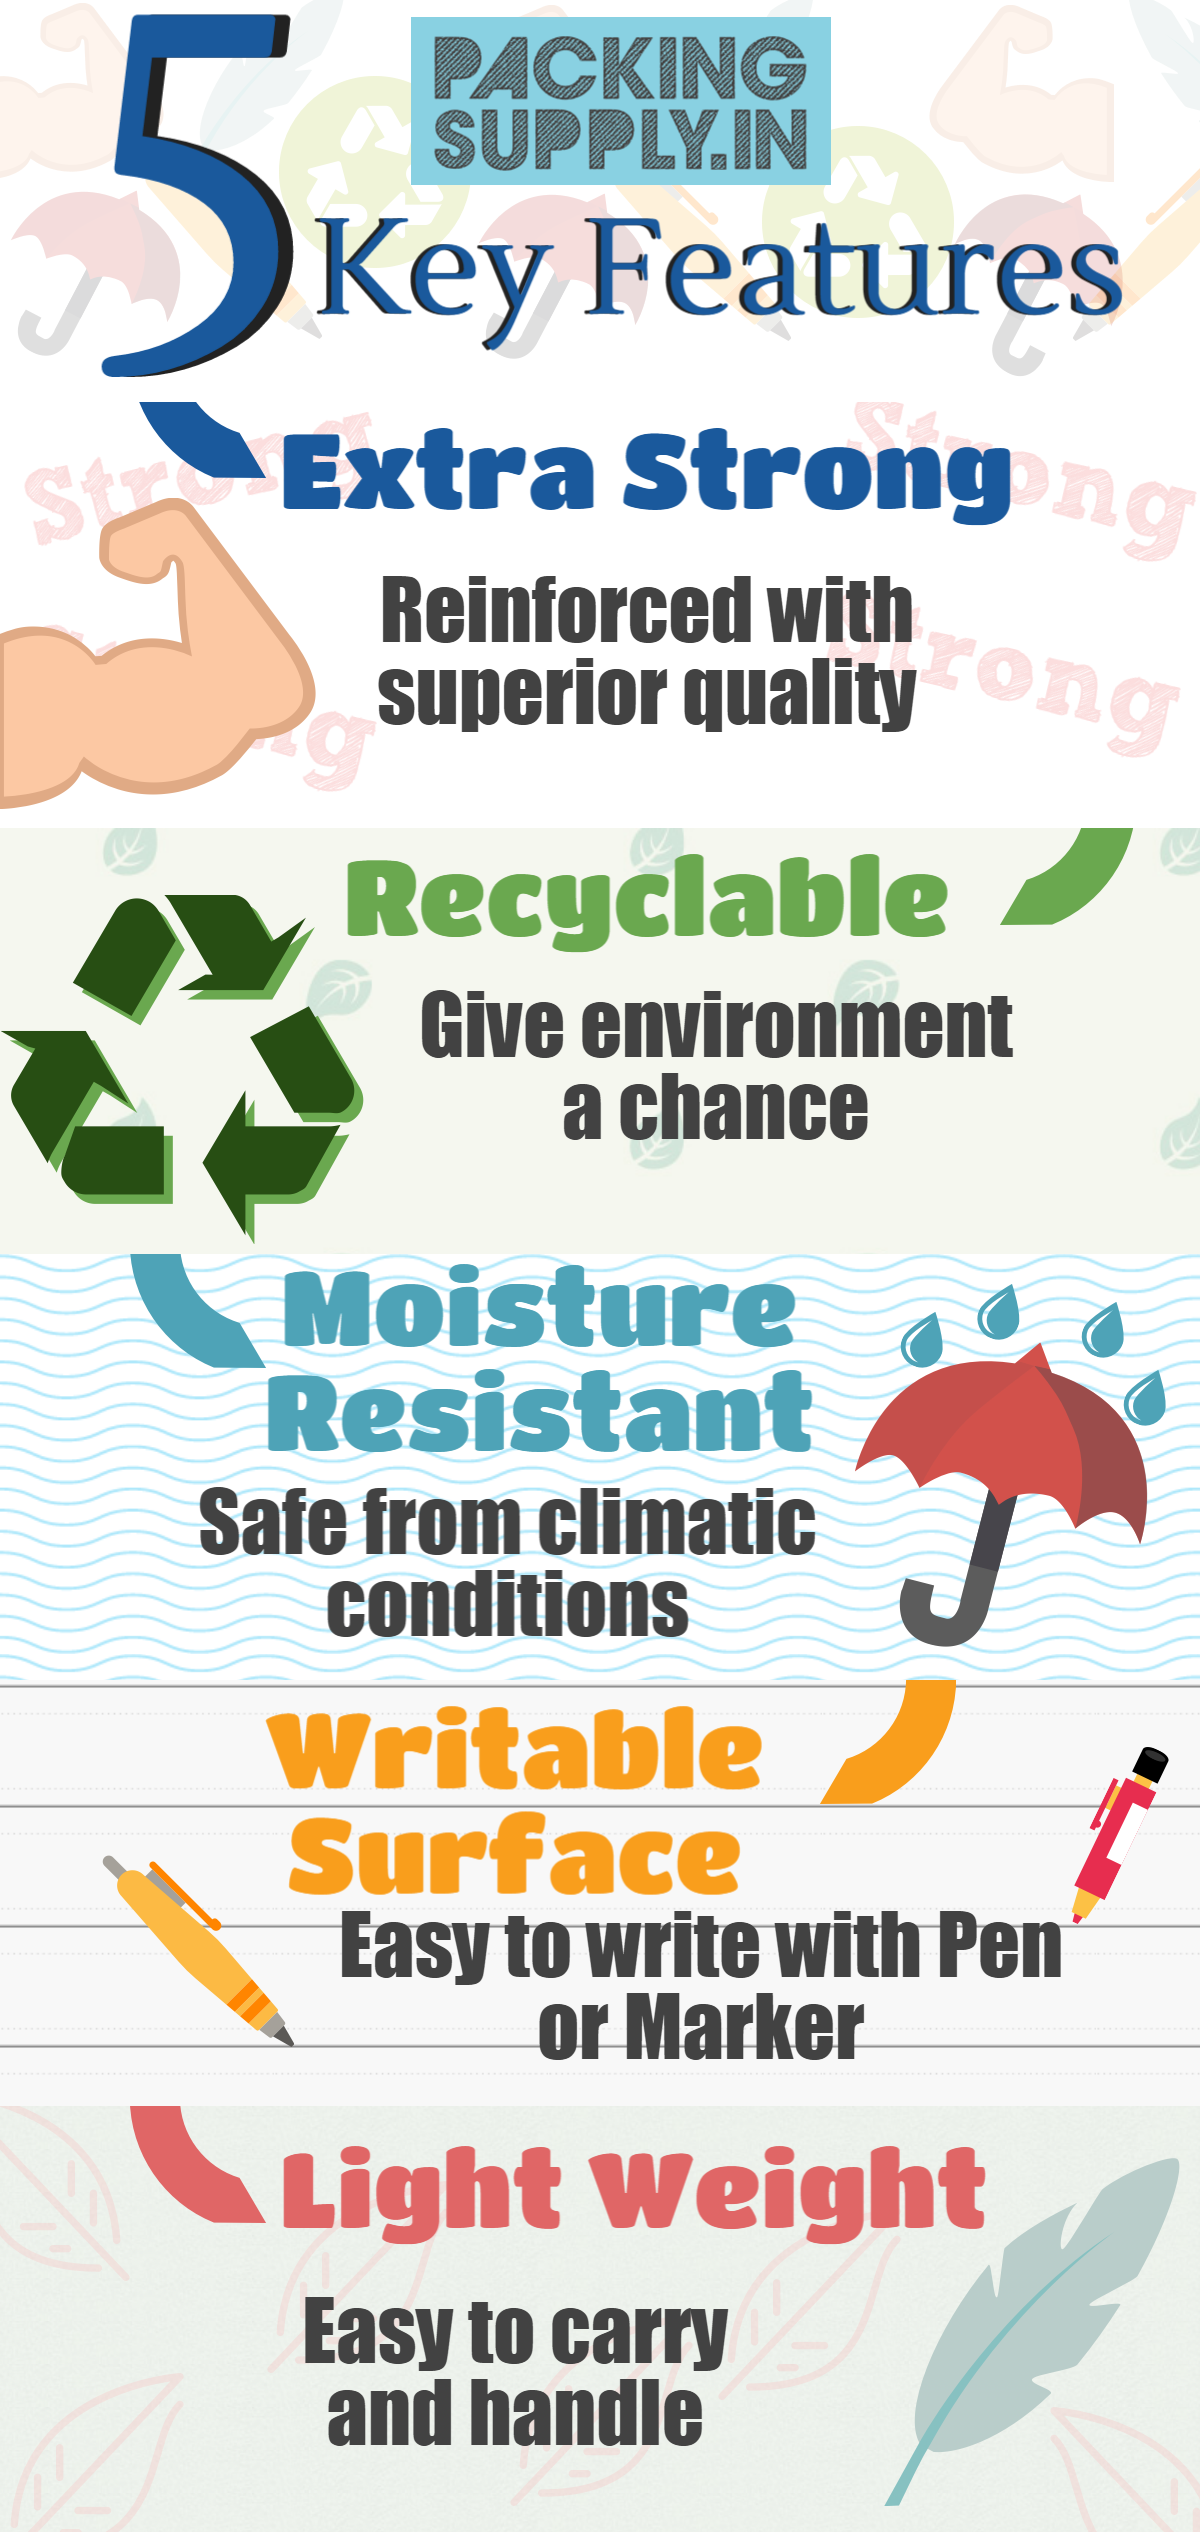 Features of Packaging Materials